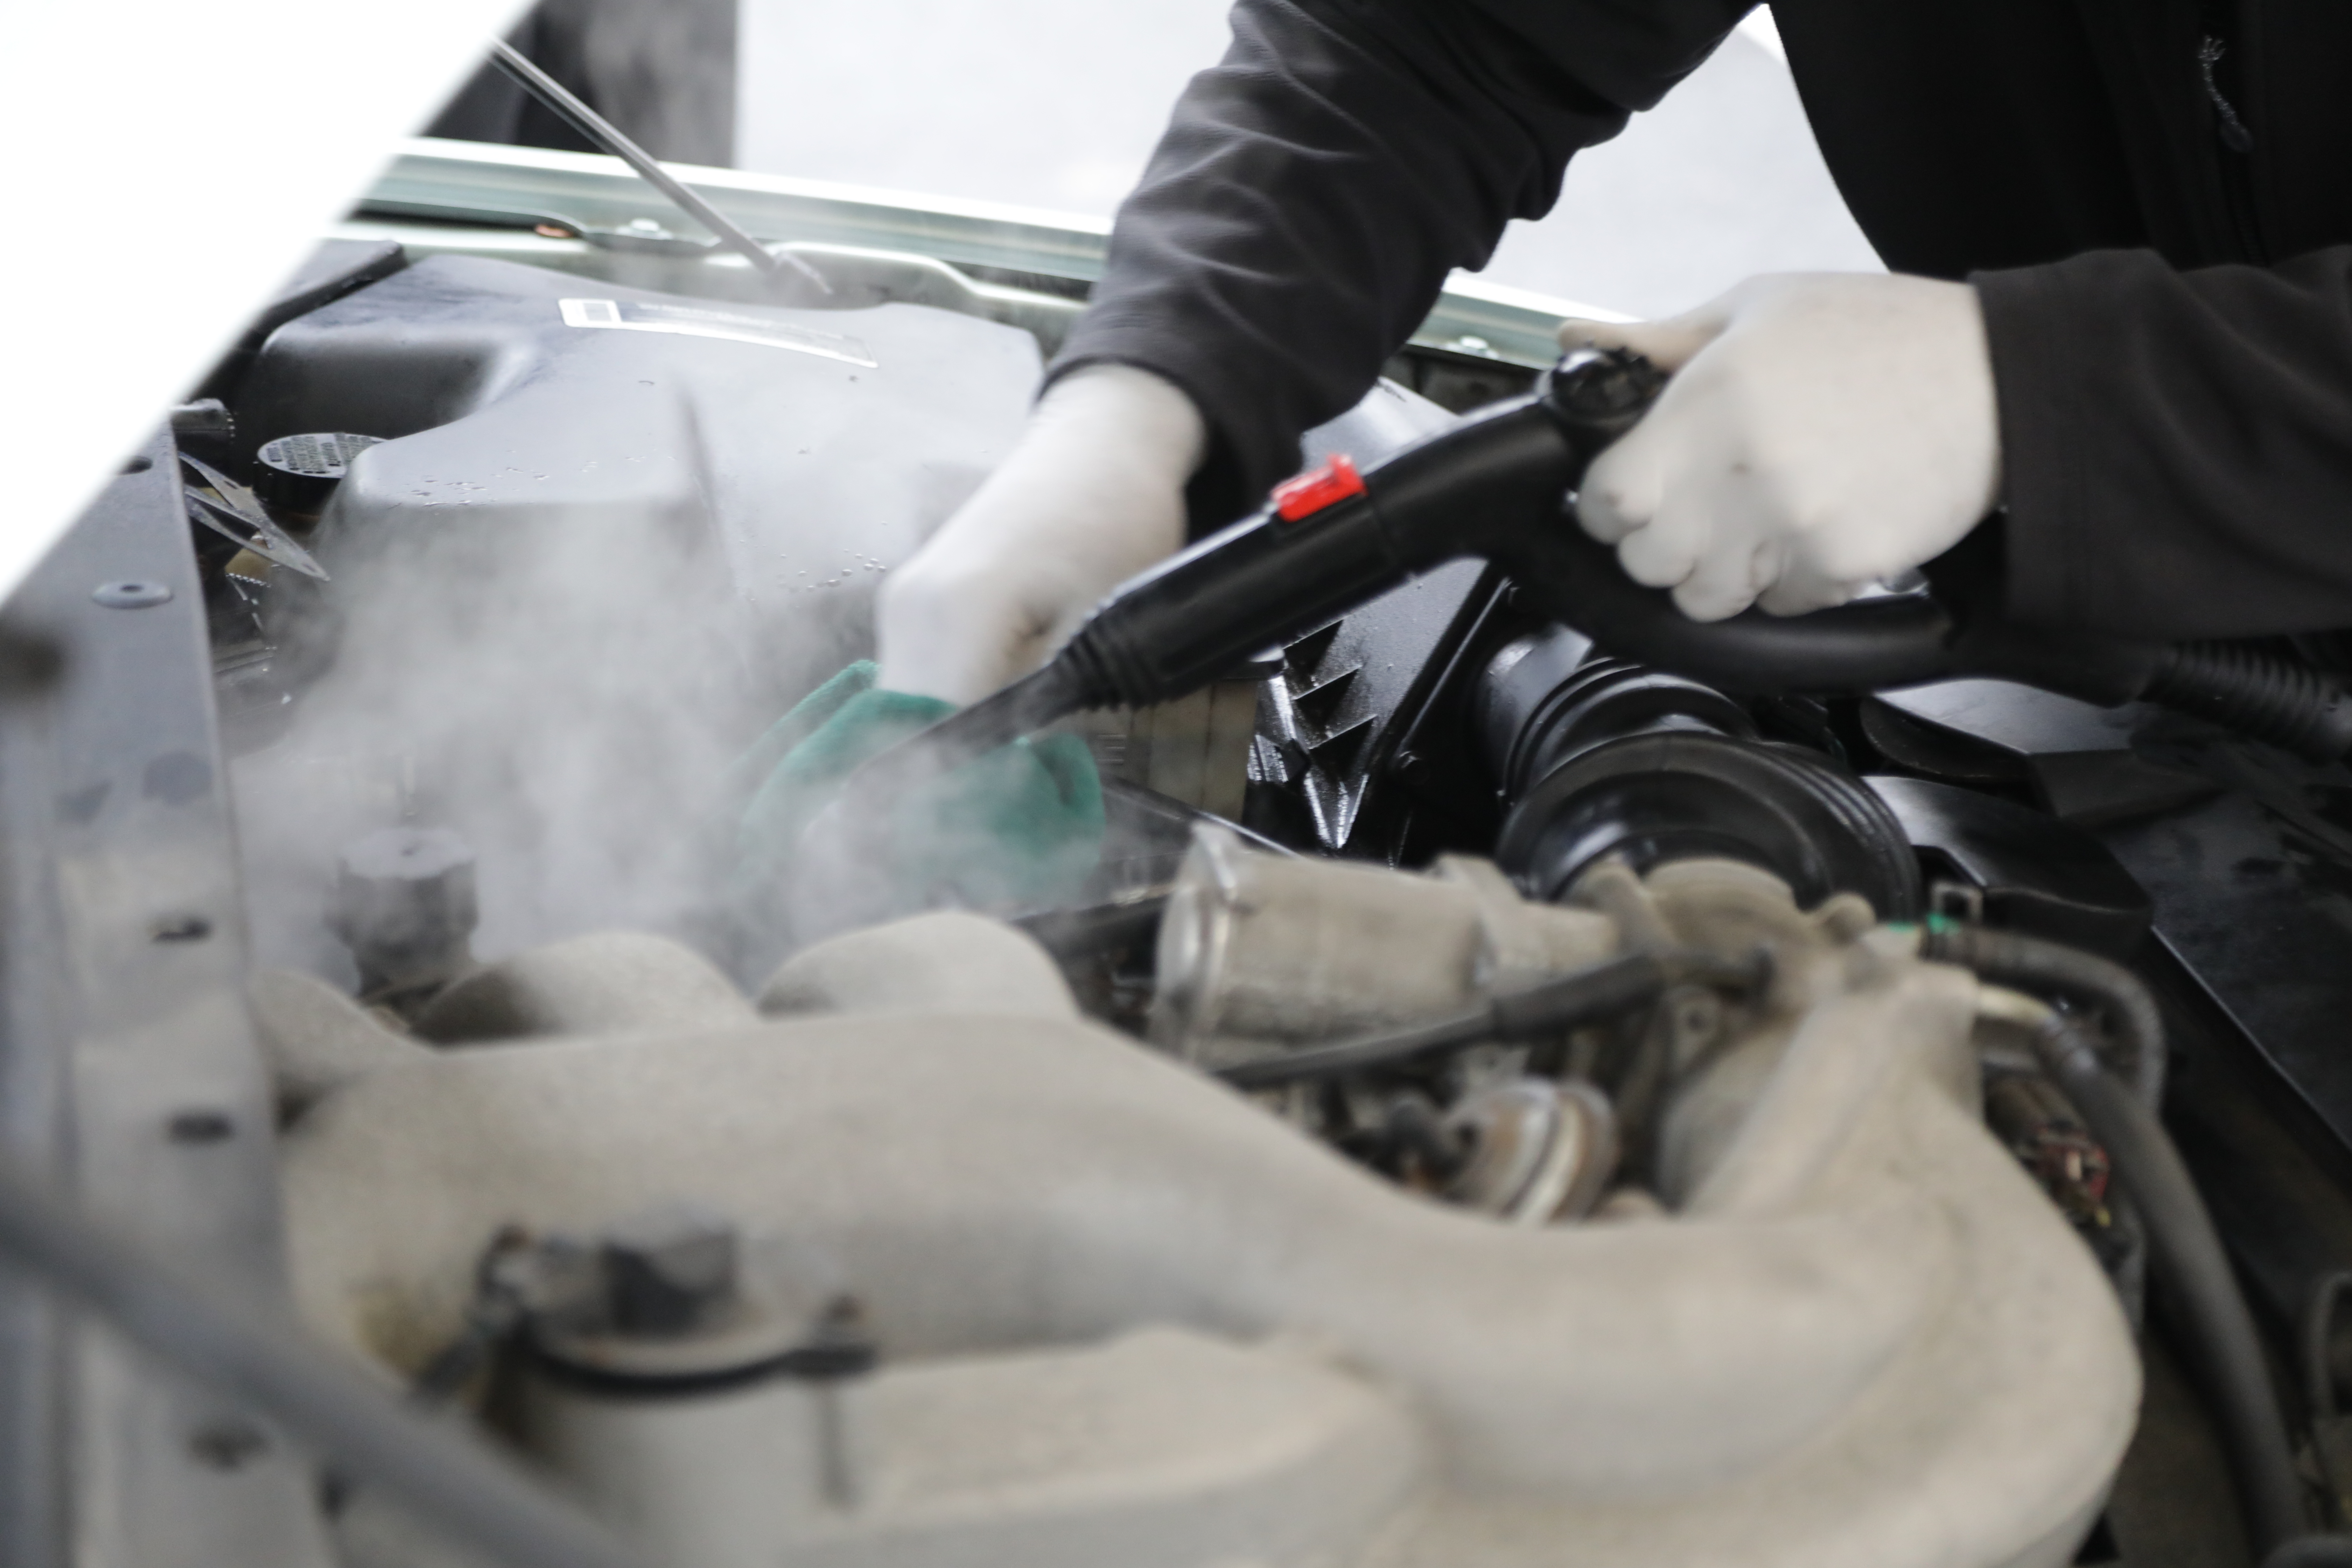 How to Steam Clean The Engine Bay [Photo Guide]